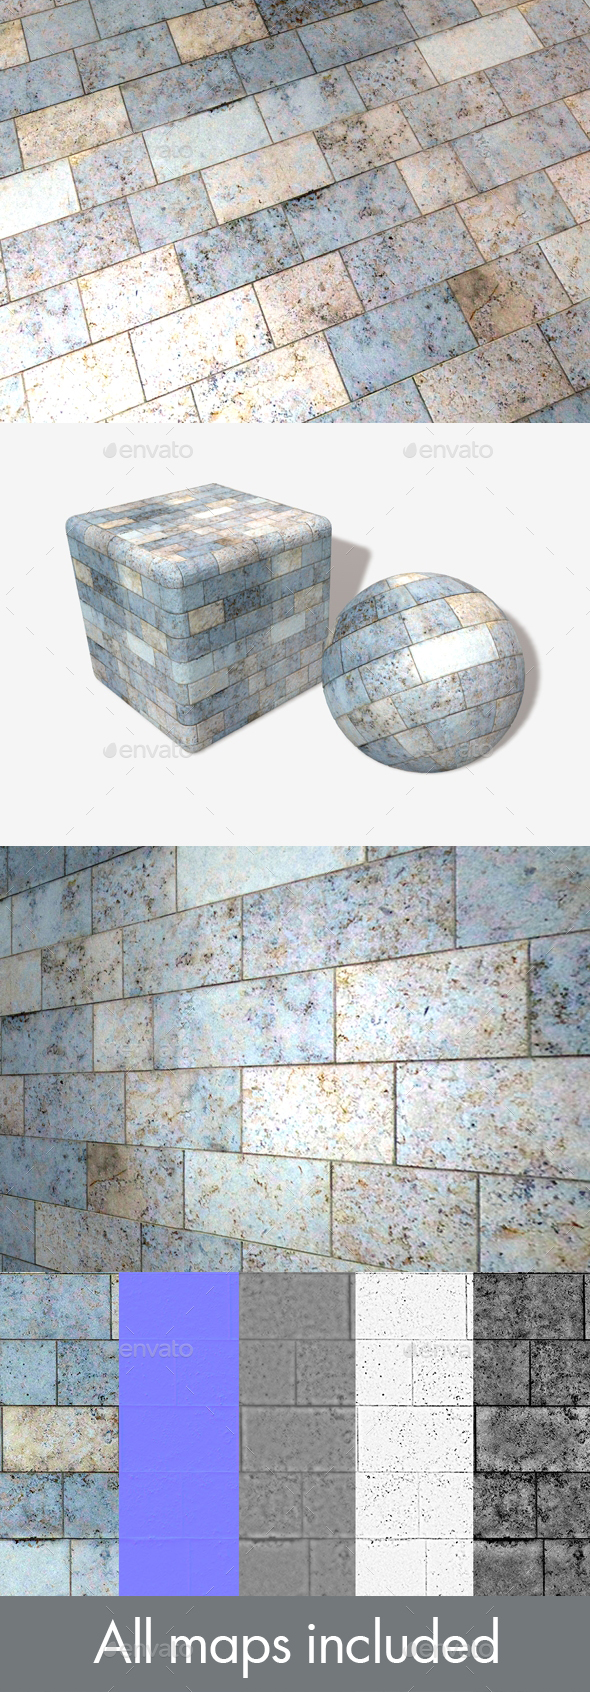 Blue Marble Bricks Seamless Texture - 3DOcean Item for Sale